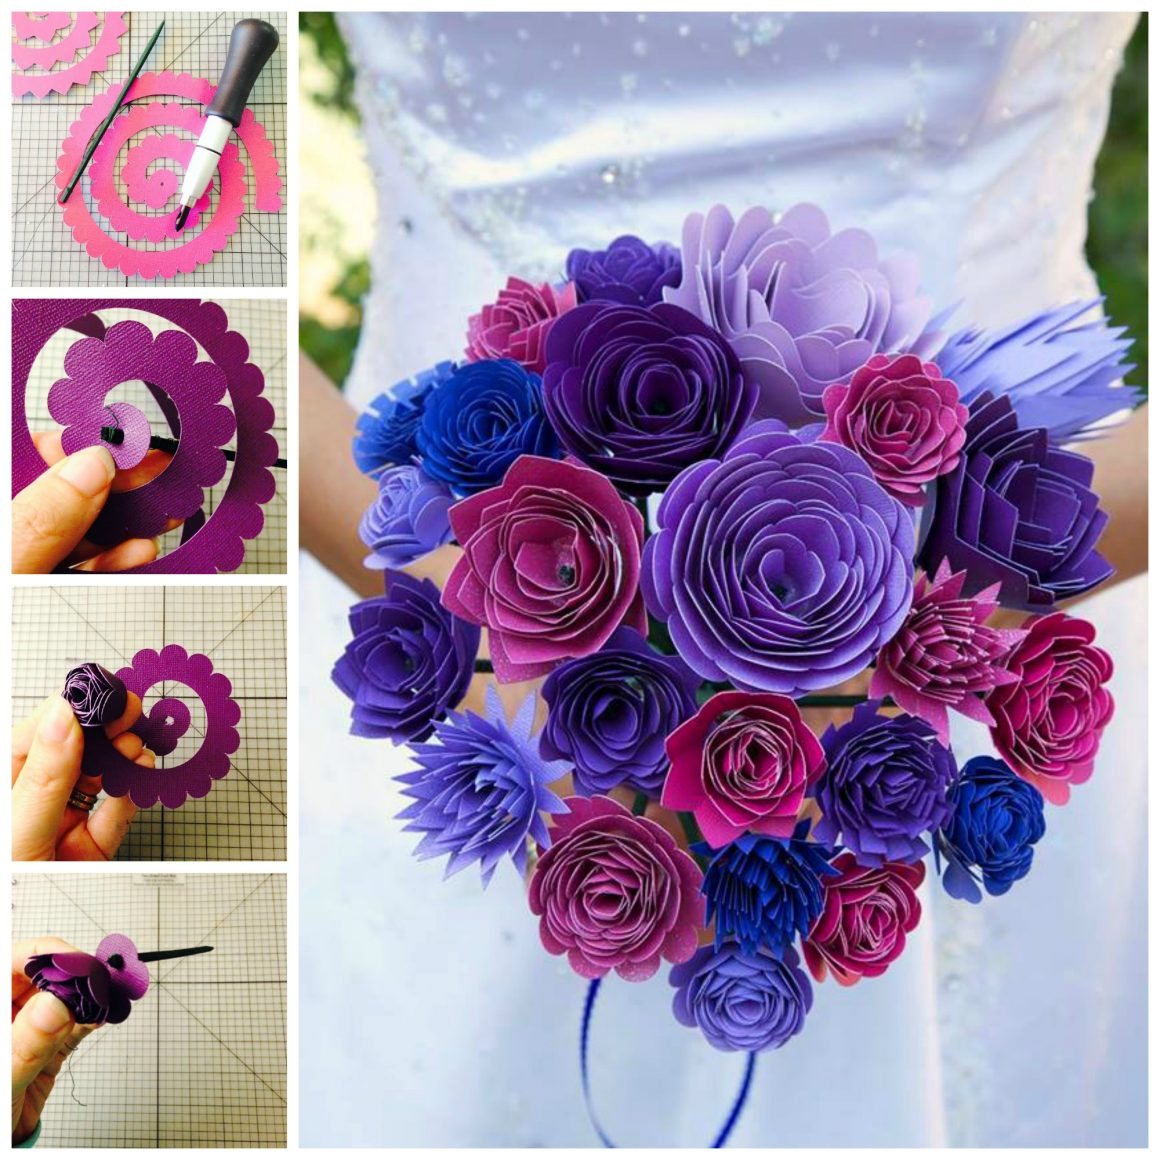 Diy paper wedding bouquet and matching flower girl barrettes hello create a gorgeous paper wedding bouquet perfect for a wedding shower rehearsal or even izmirmasajfo